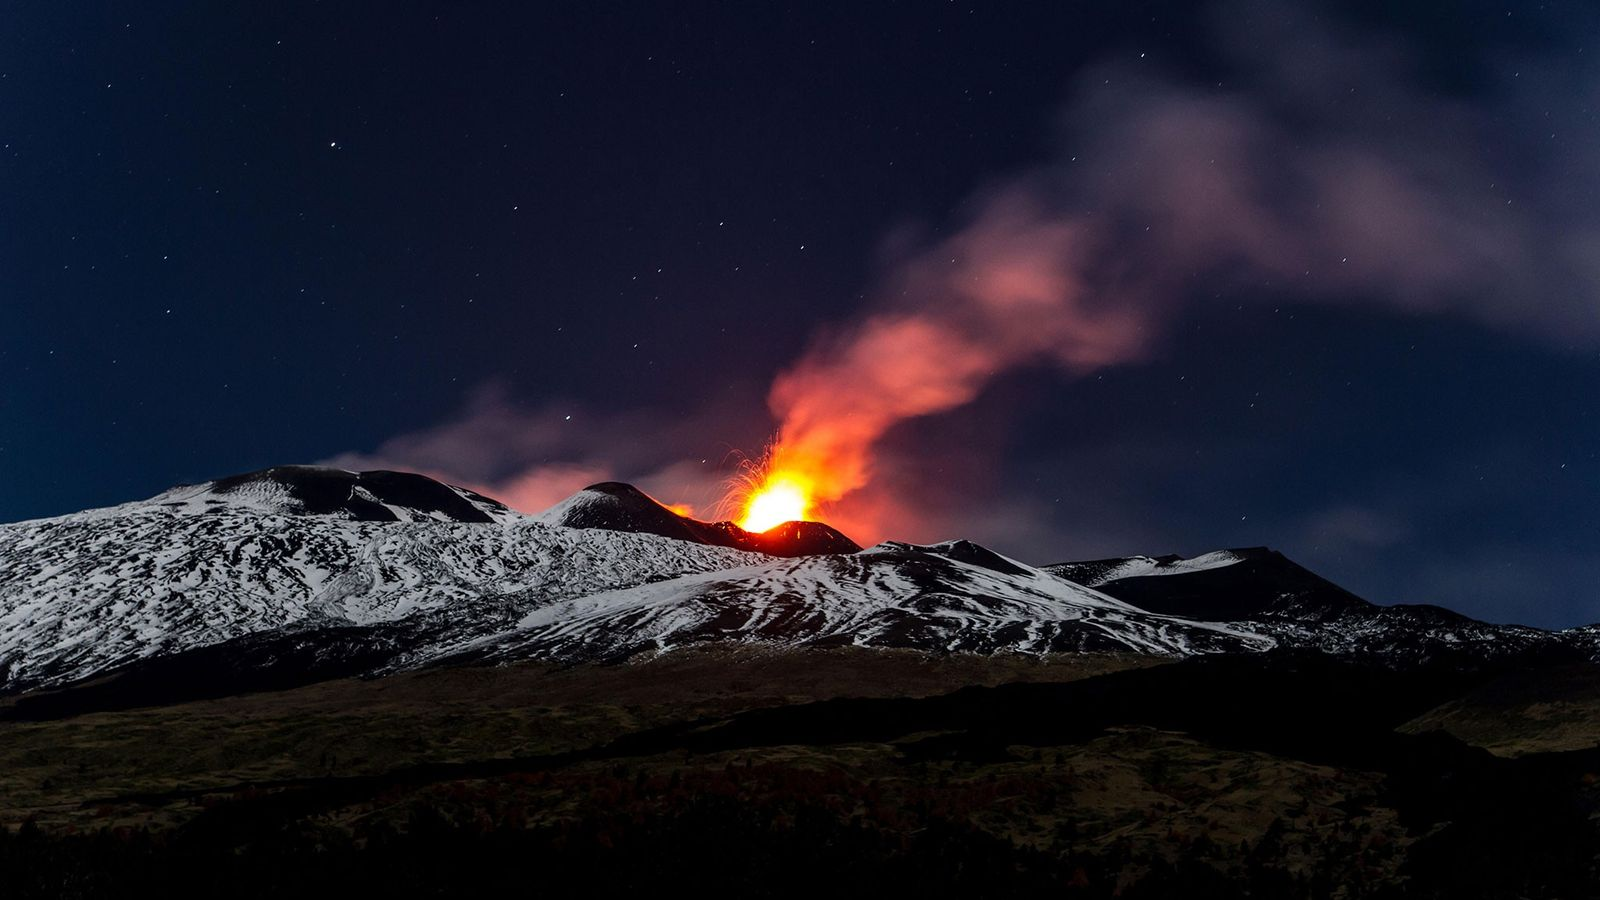 Lava bursts from Mount Etna in Sicily during a magnificent 2013 eruption.